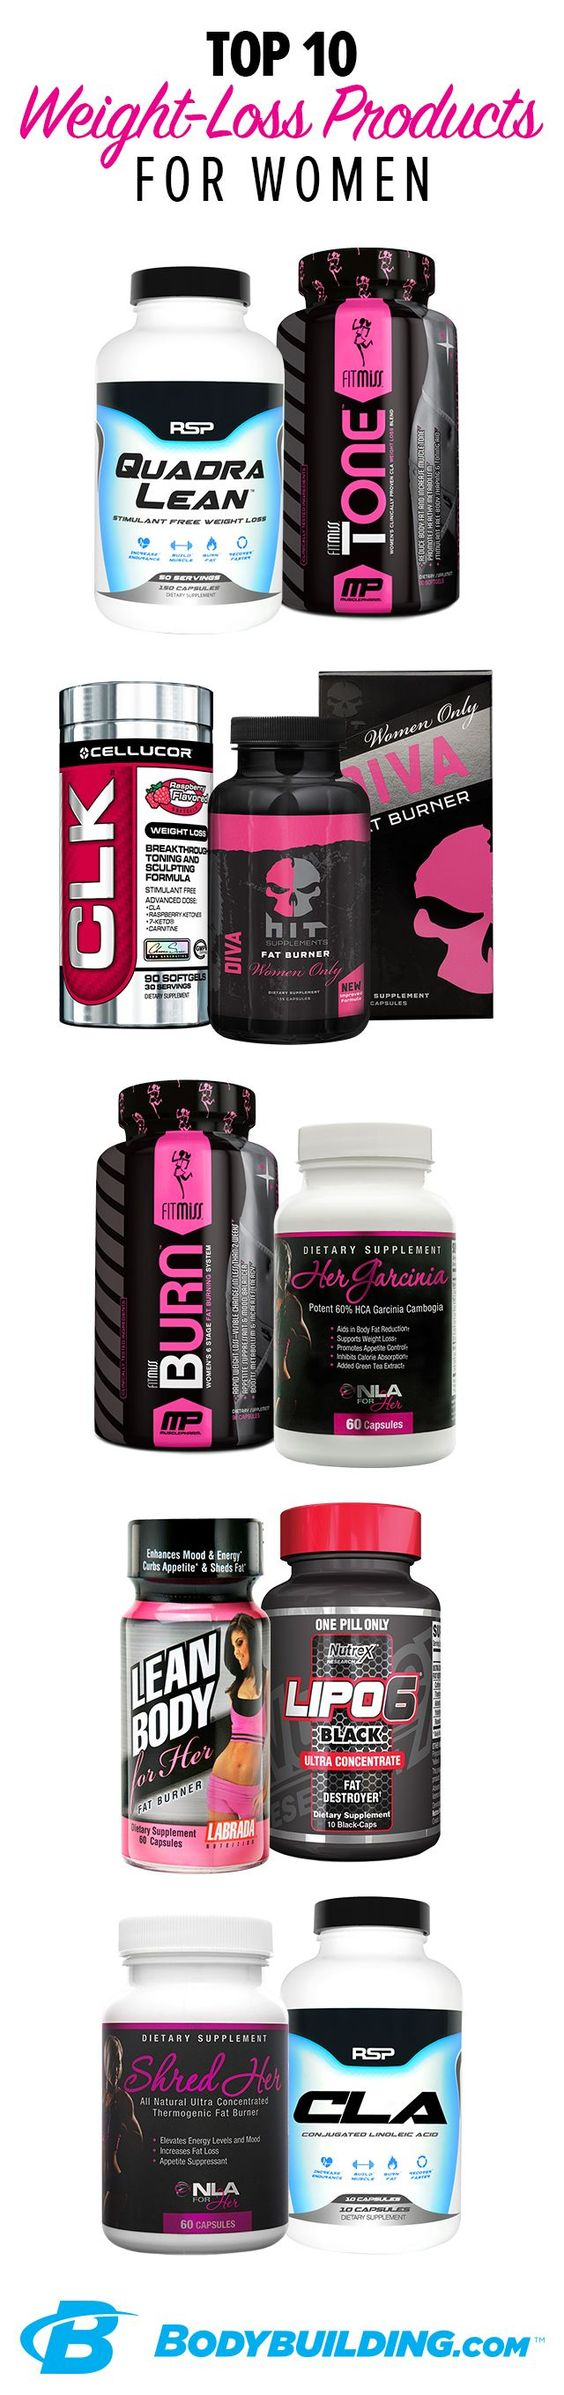 TOP 10 WEIGHT LOSS SUPPLEMENTS FOR WOMEN! Don't let a layer of fat hide your hard-earned lean muscle. Our Top 10 weight loss products can help your body increase metabolism, burn fat as fuel, and control appetite—with or without energizing stimulants. Find the formula that's right for you!